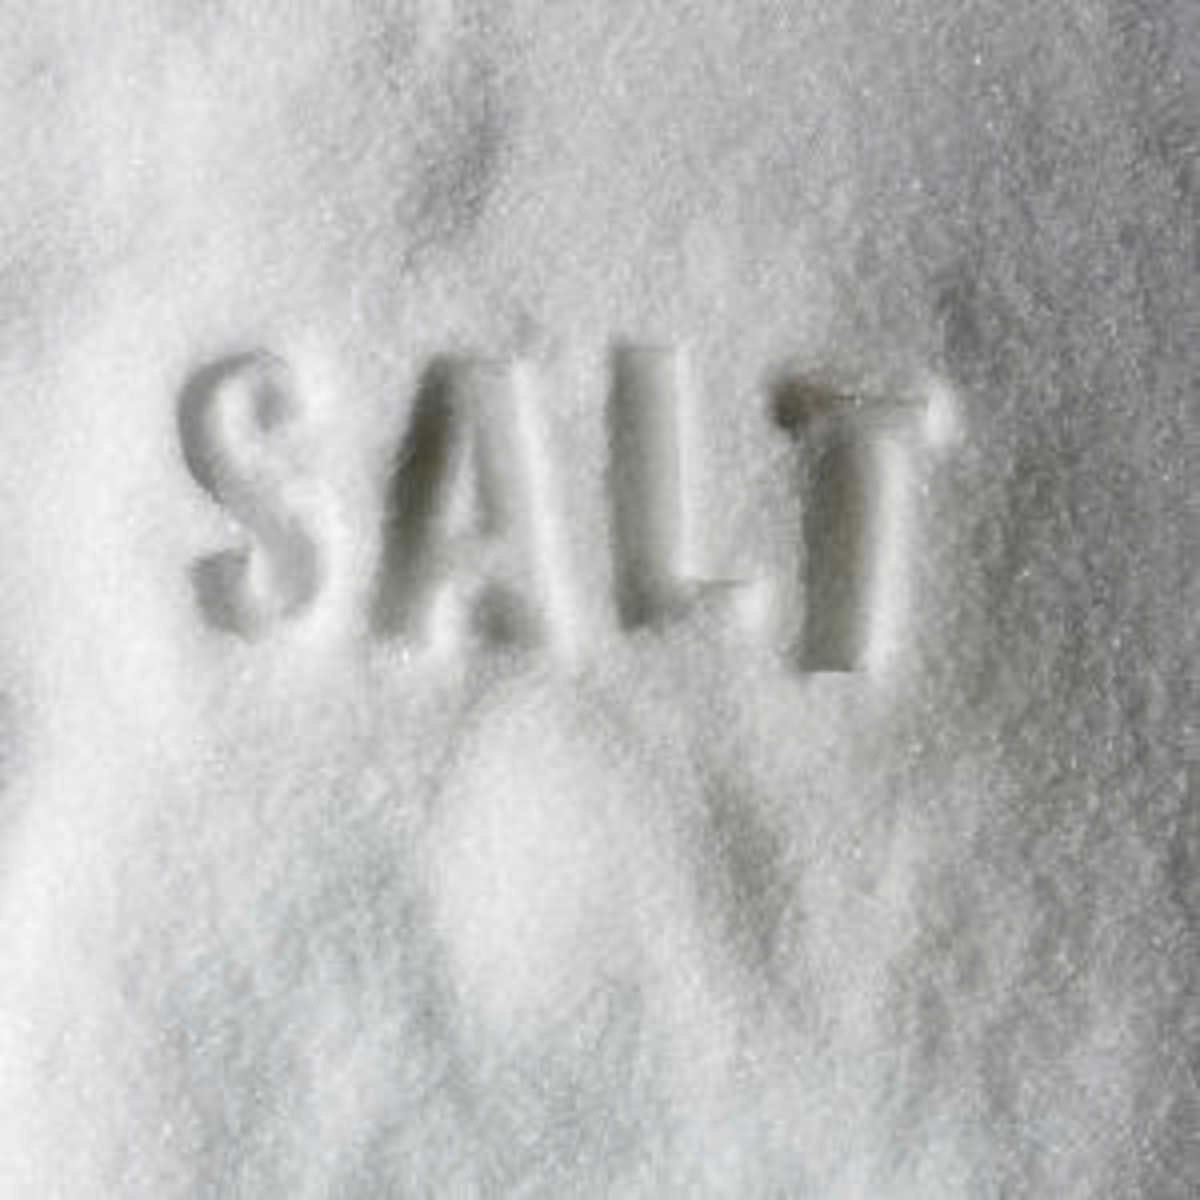 salt-the-worlds-first-precious-food-commodity